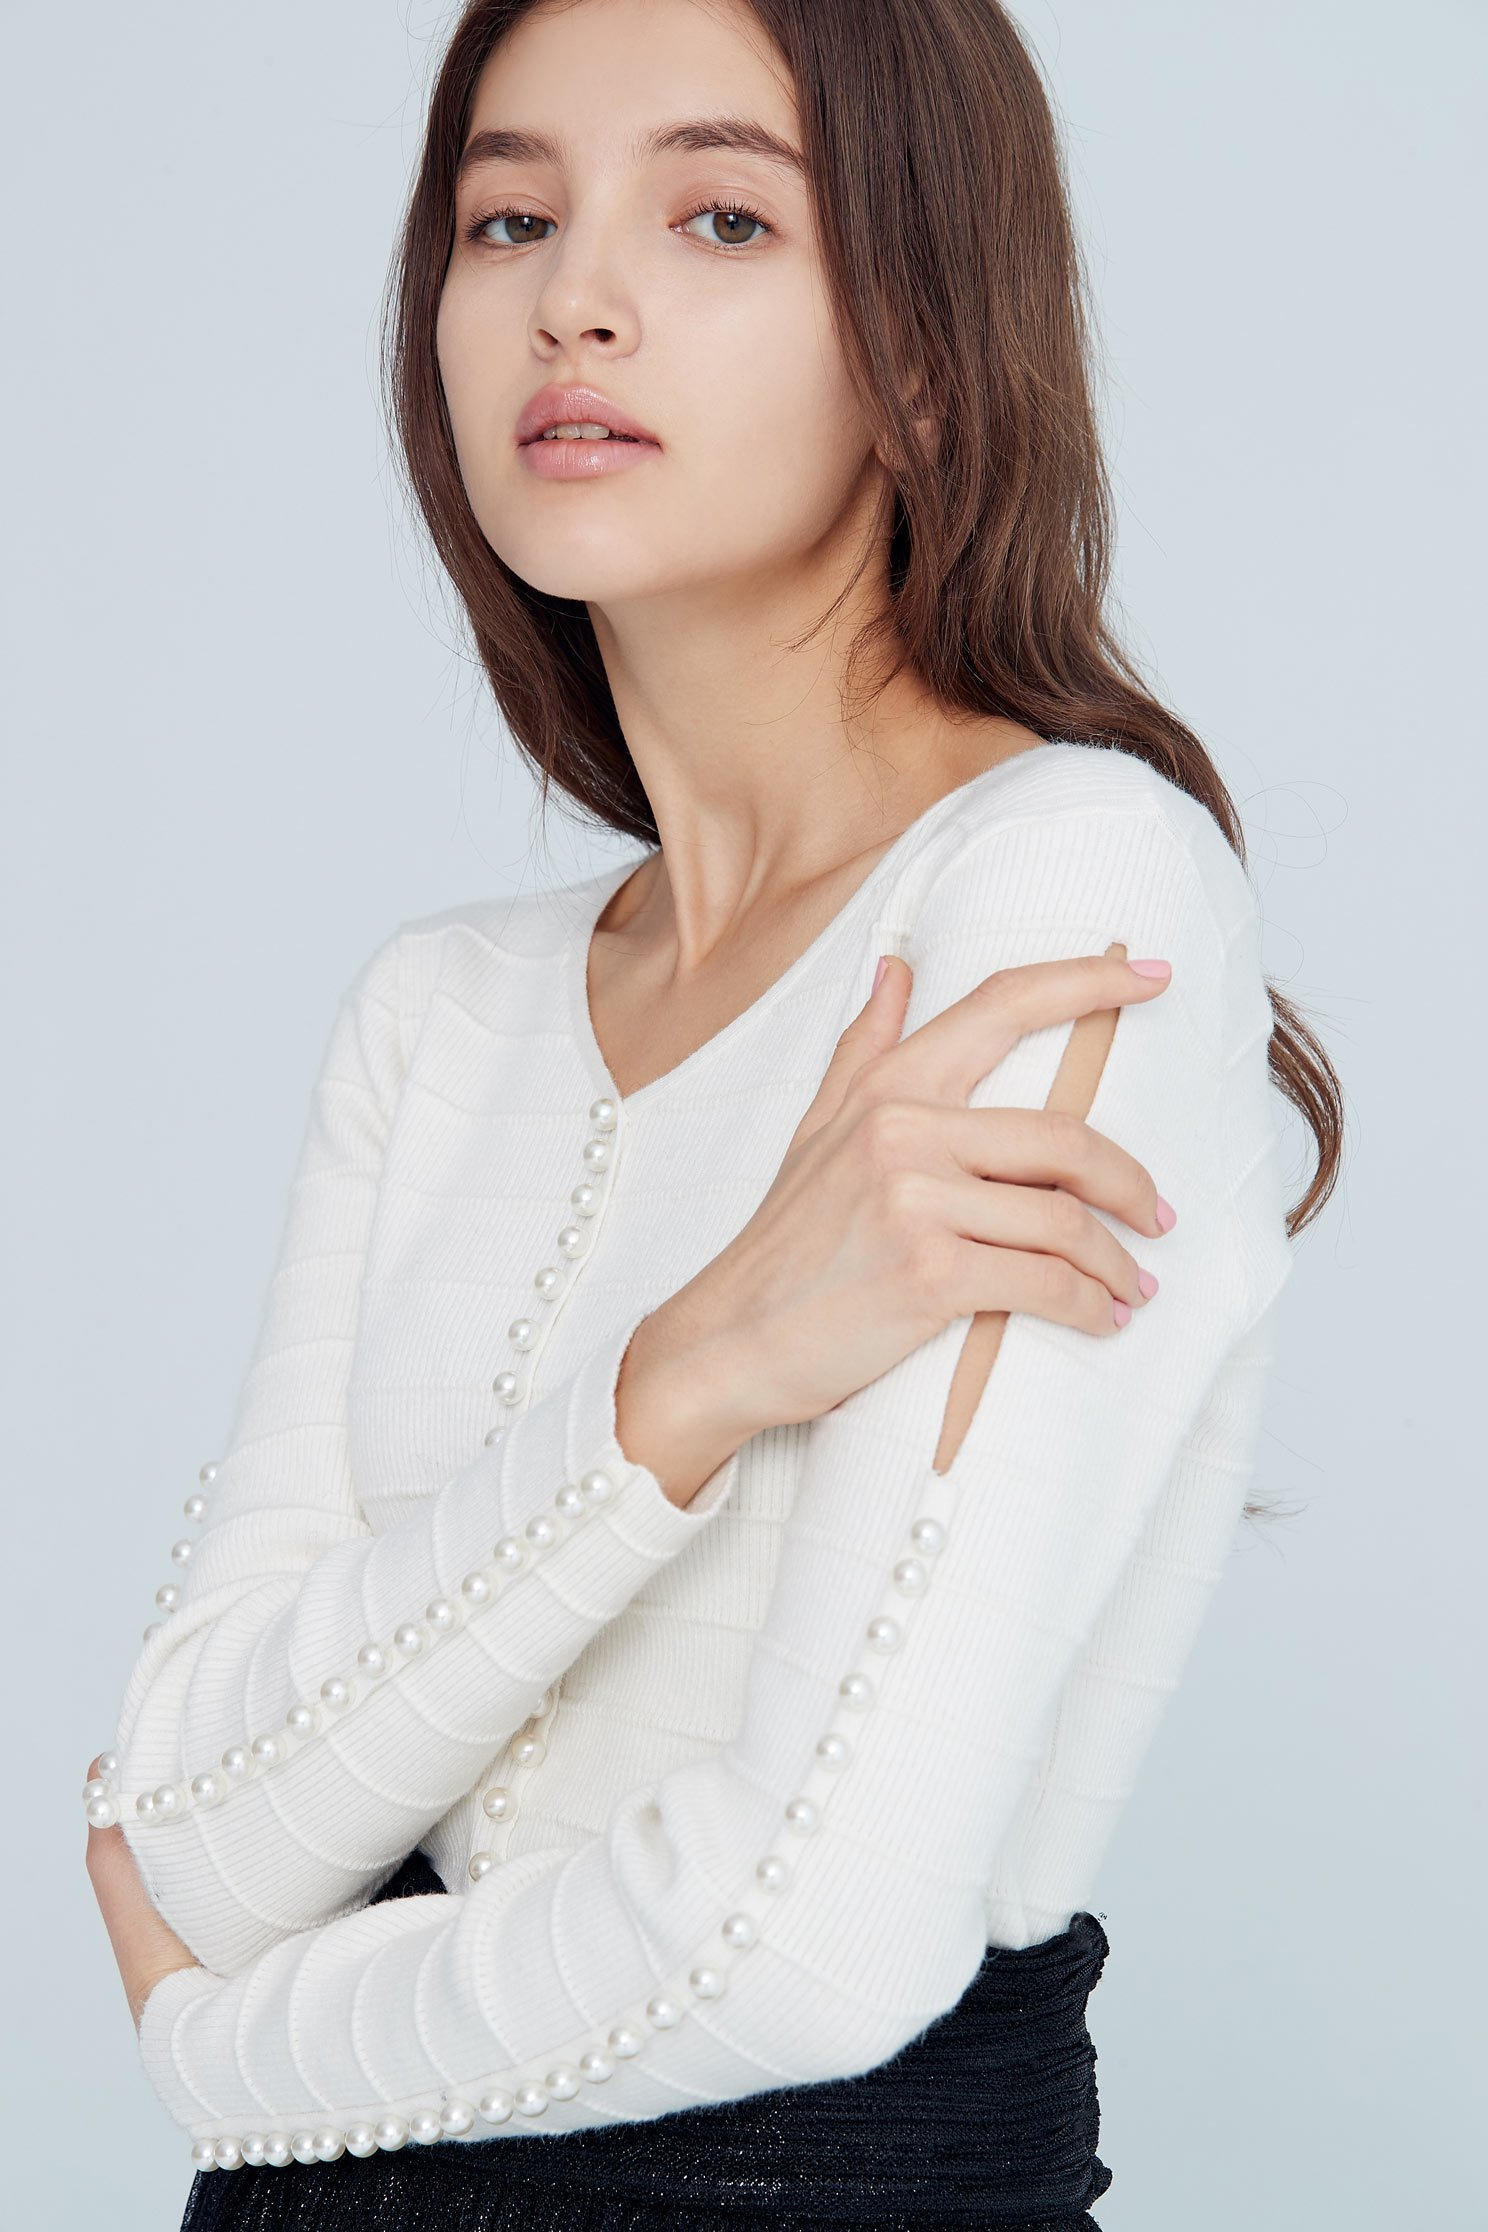 Stereoscopic crease top,top,whitetop,knittedtop,longsleevetop